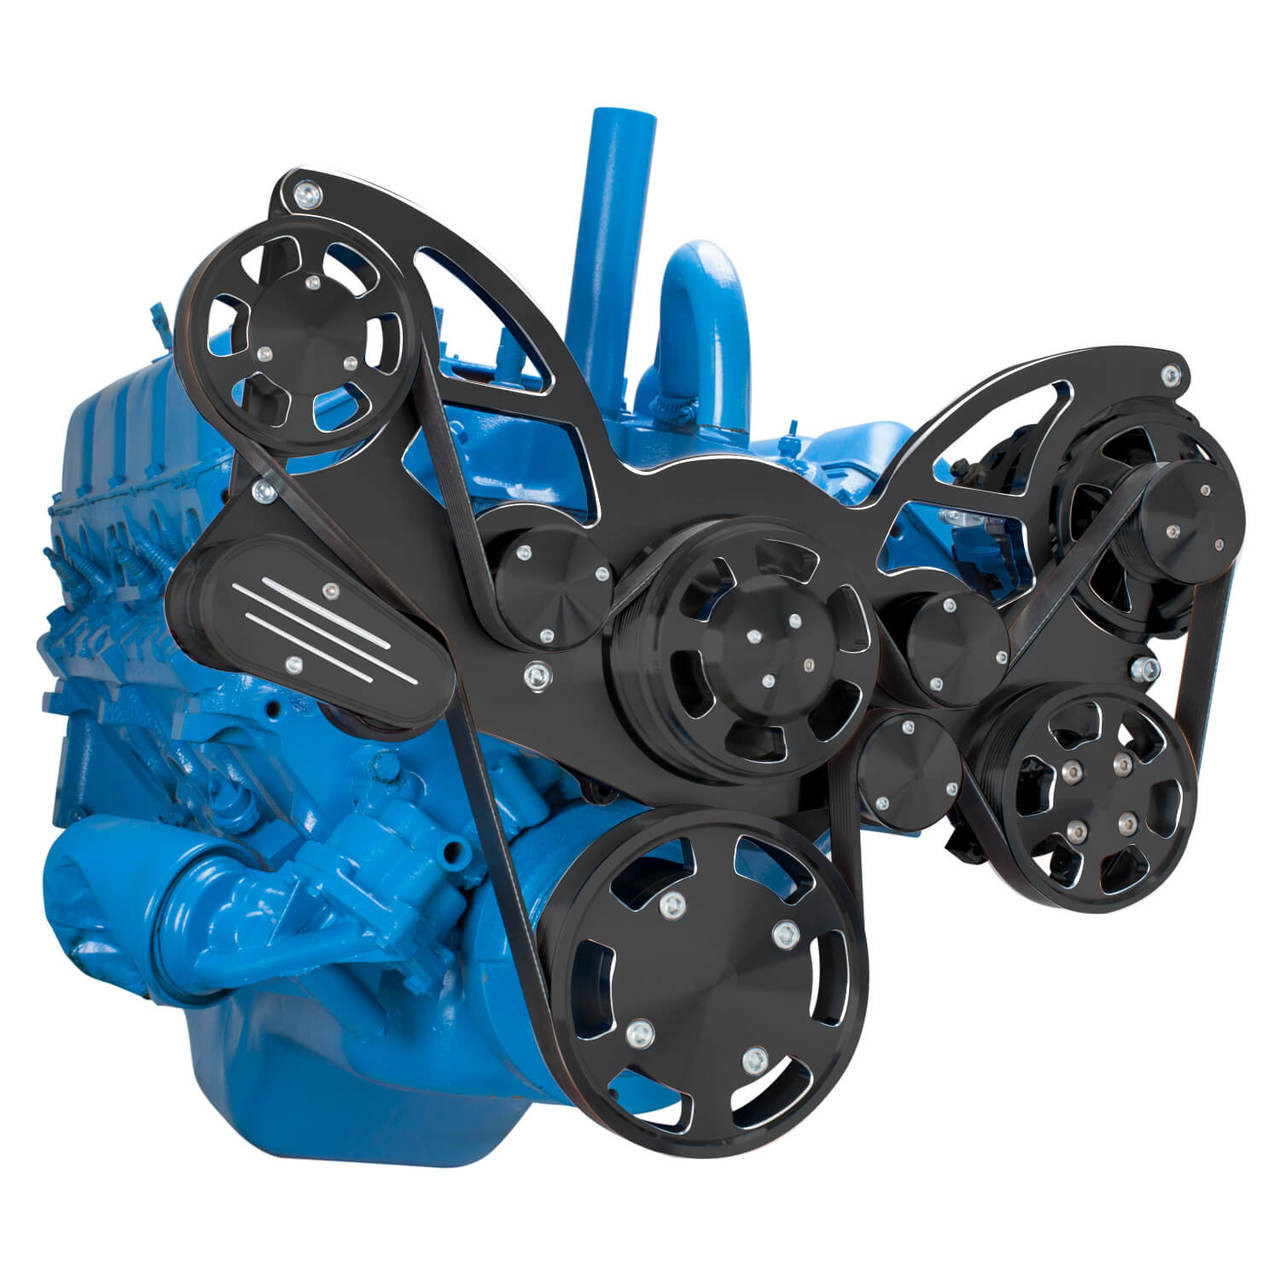 hight resolution of stealth black serpentine conversion kit for amc jeep with power steering alternator